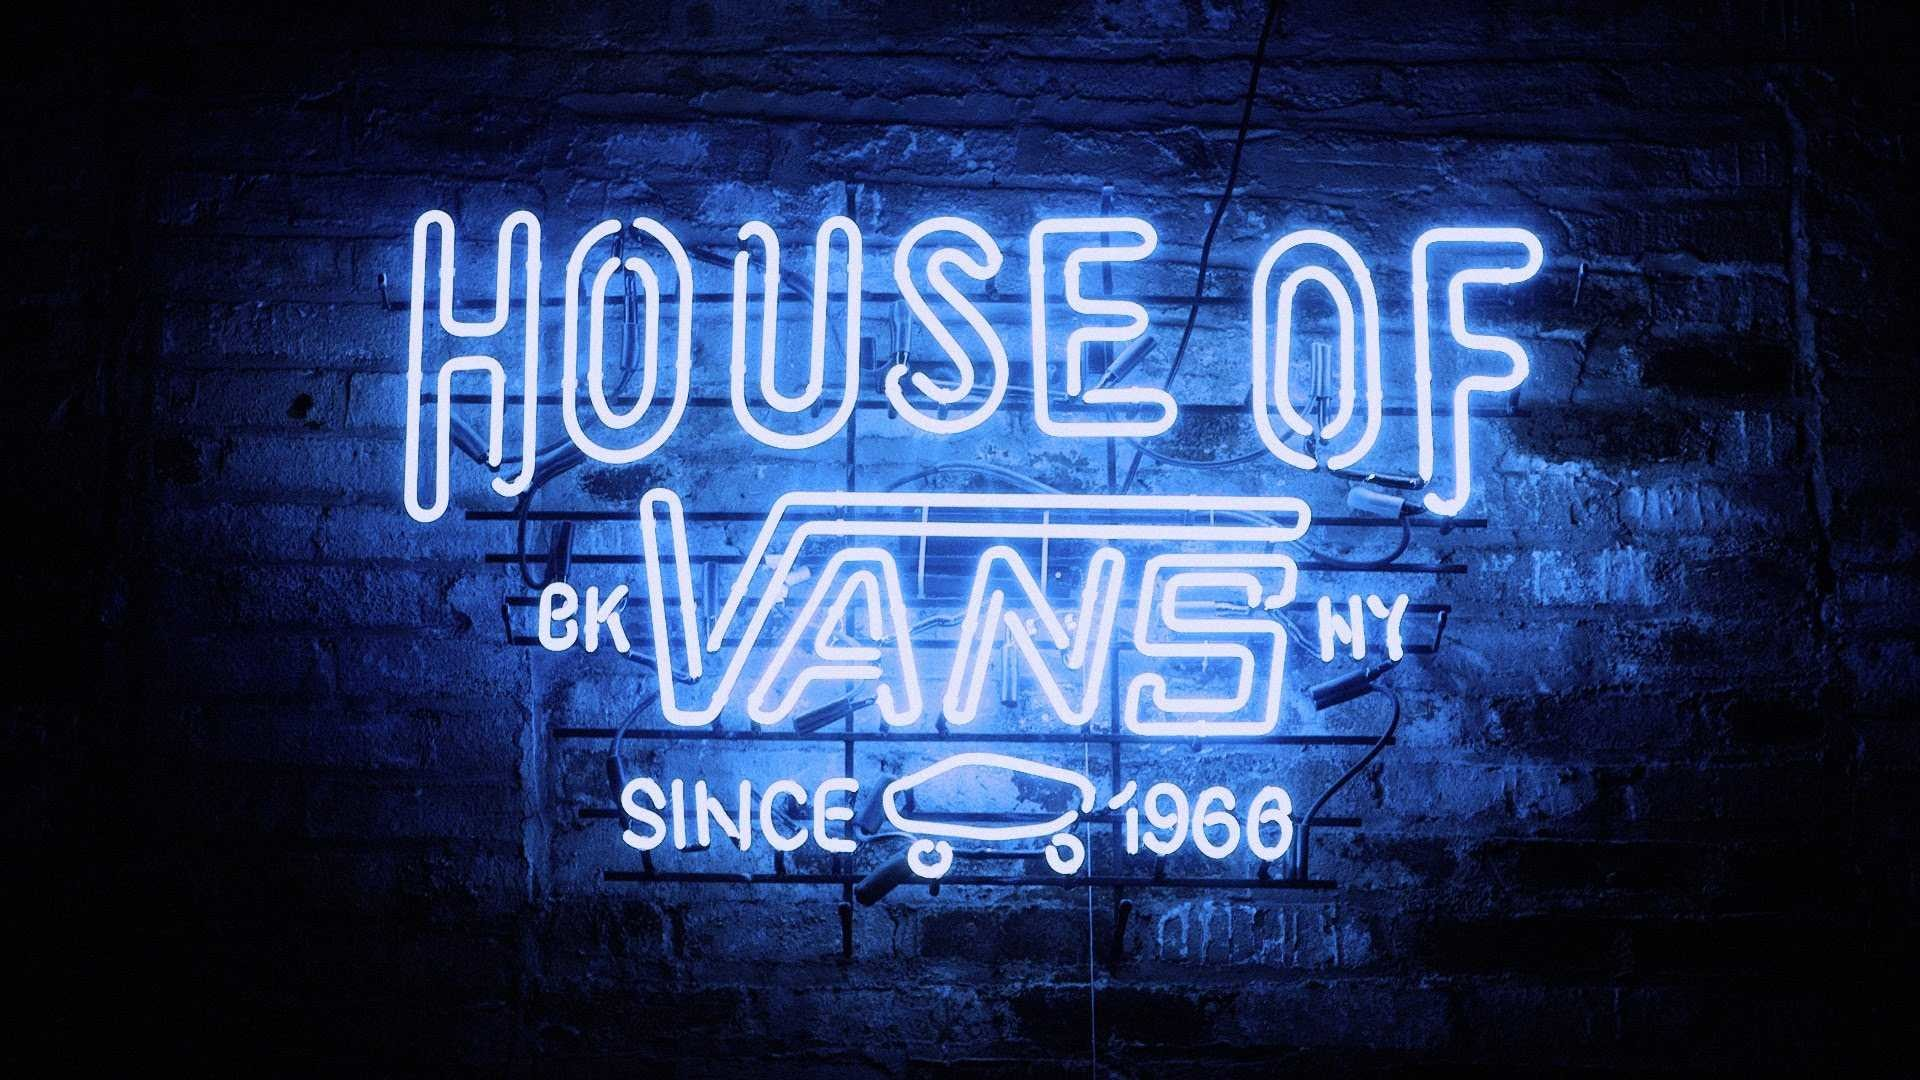 2704dbeae57 1920x1080 Vans Off The Wall Wallpaper High Resolution Hd Images Of Mobile